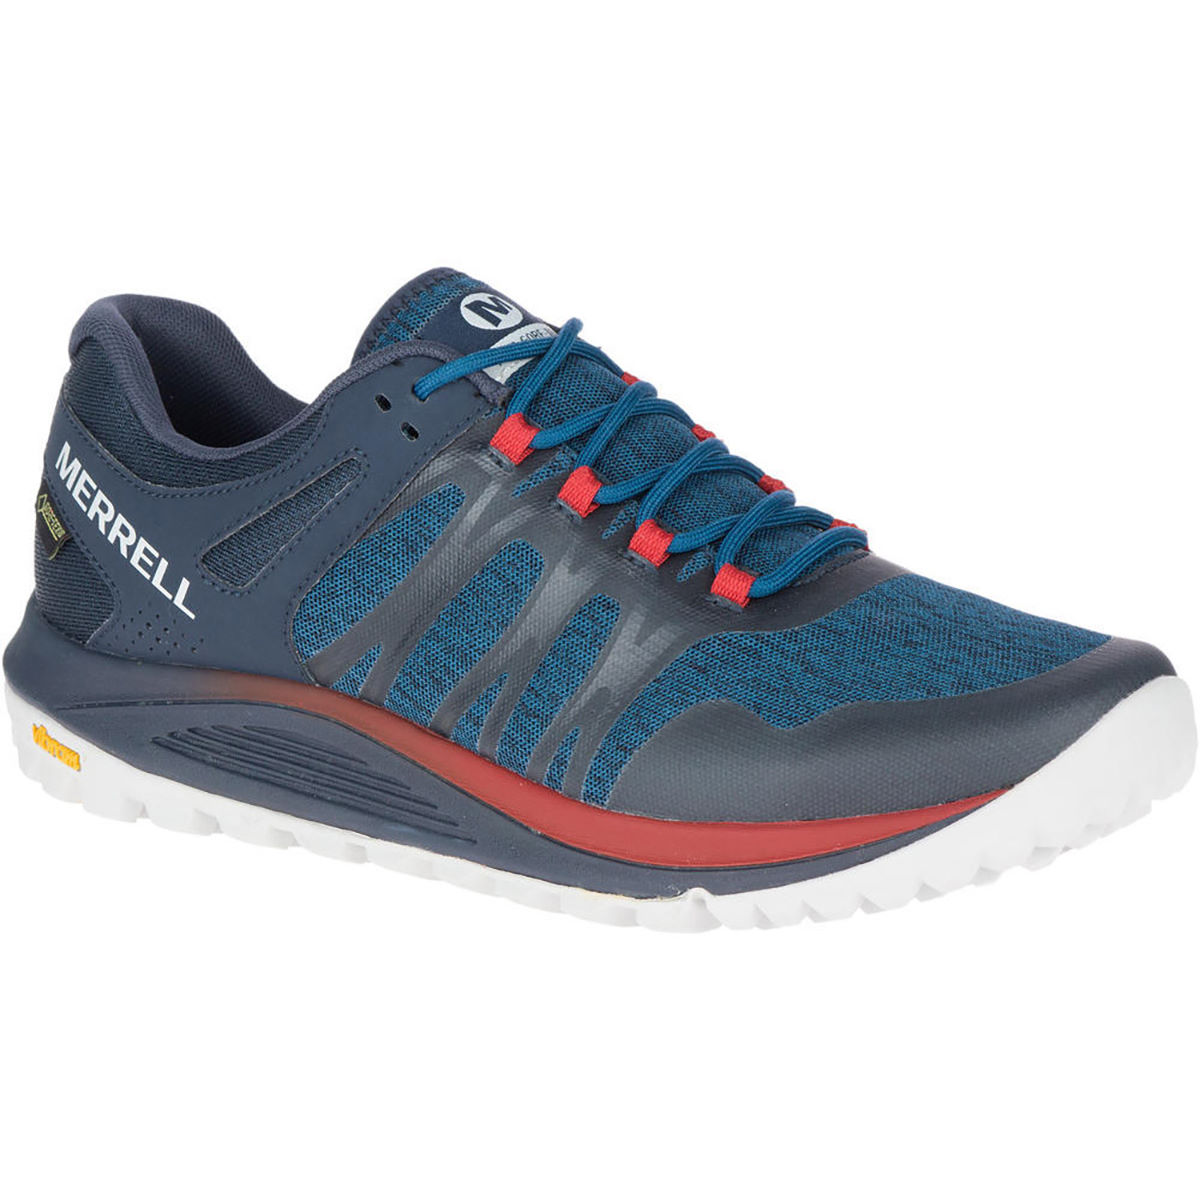 Zapatillas Merrell Nova Gore-Tex® - Zapatillas de trail running